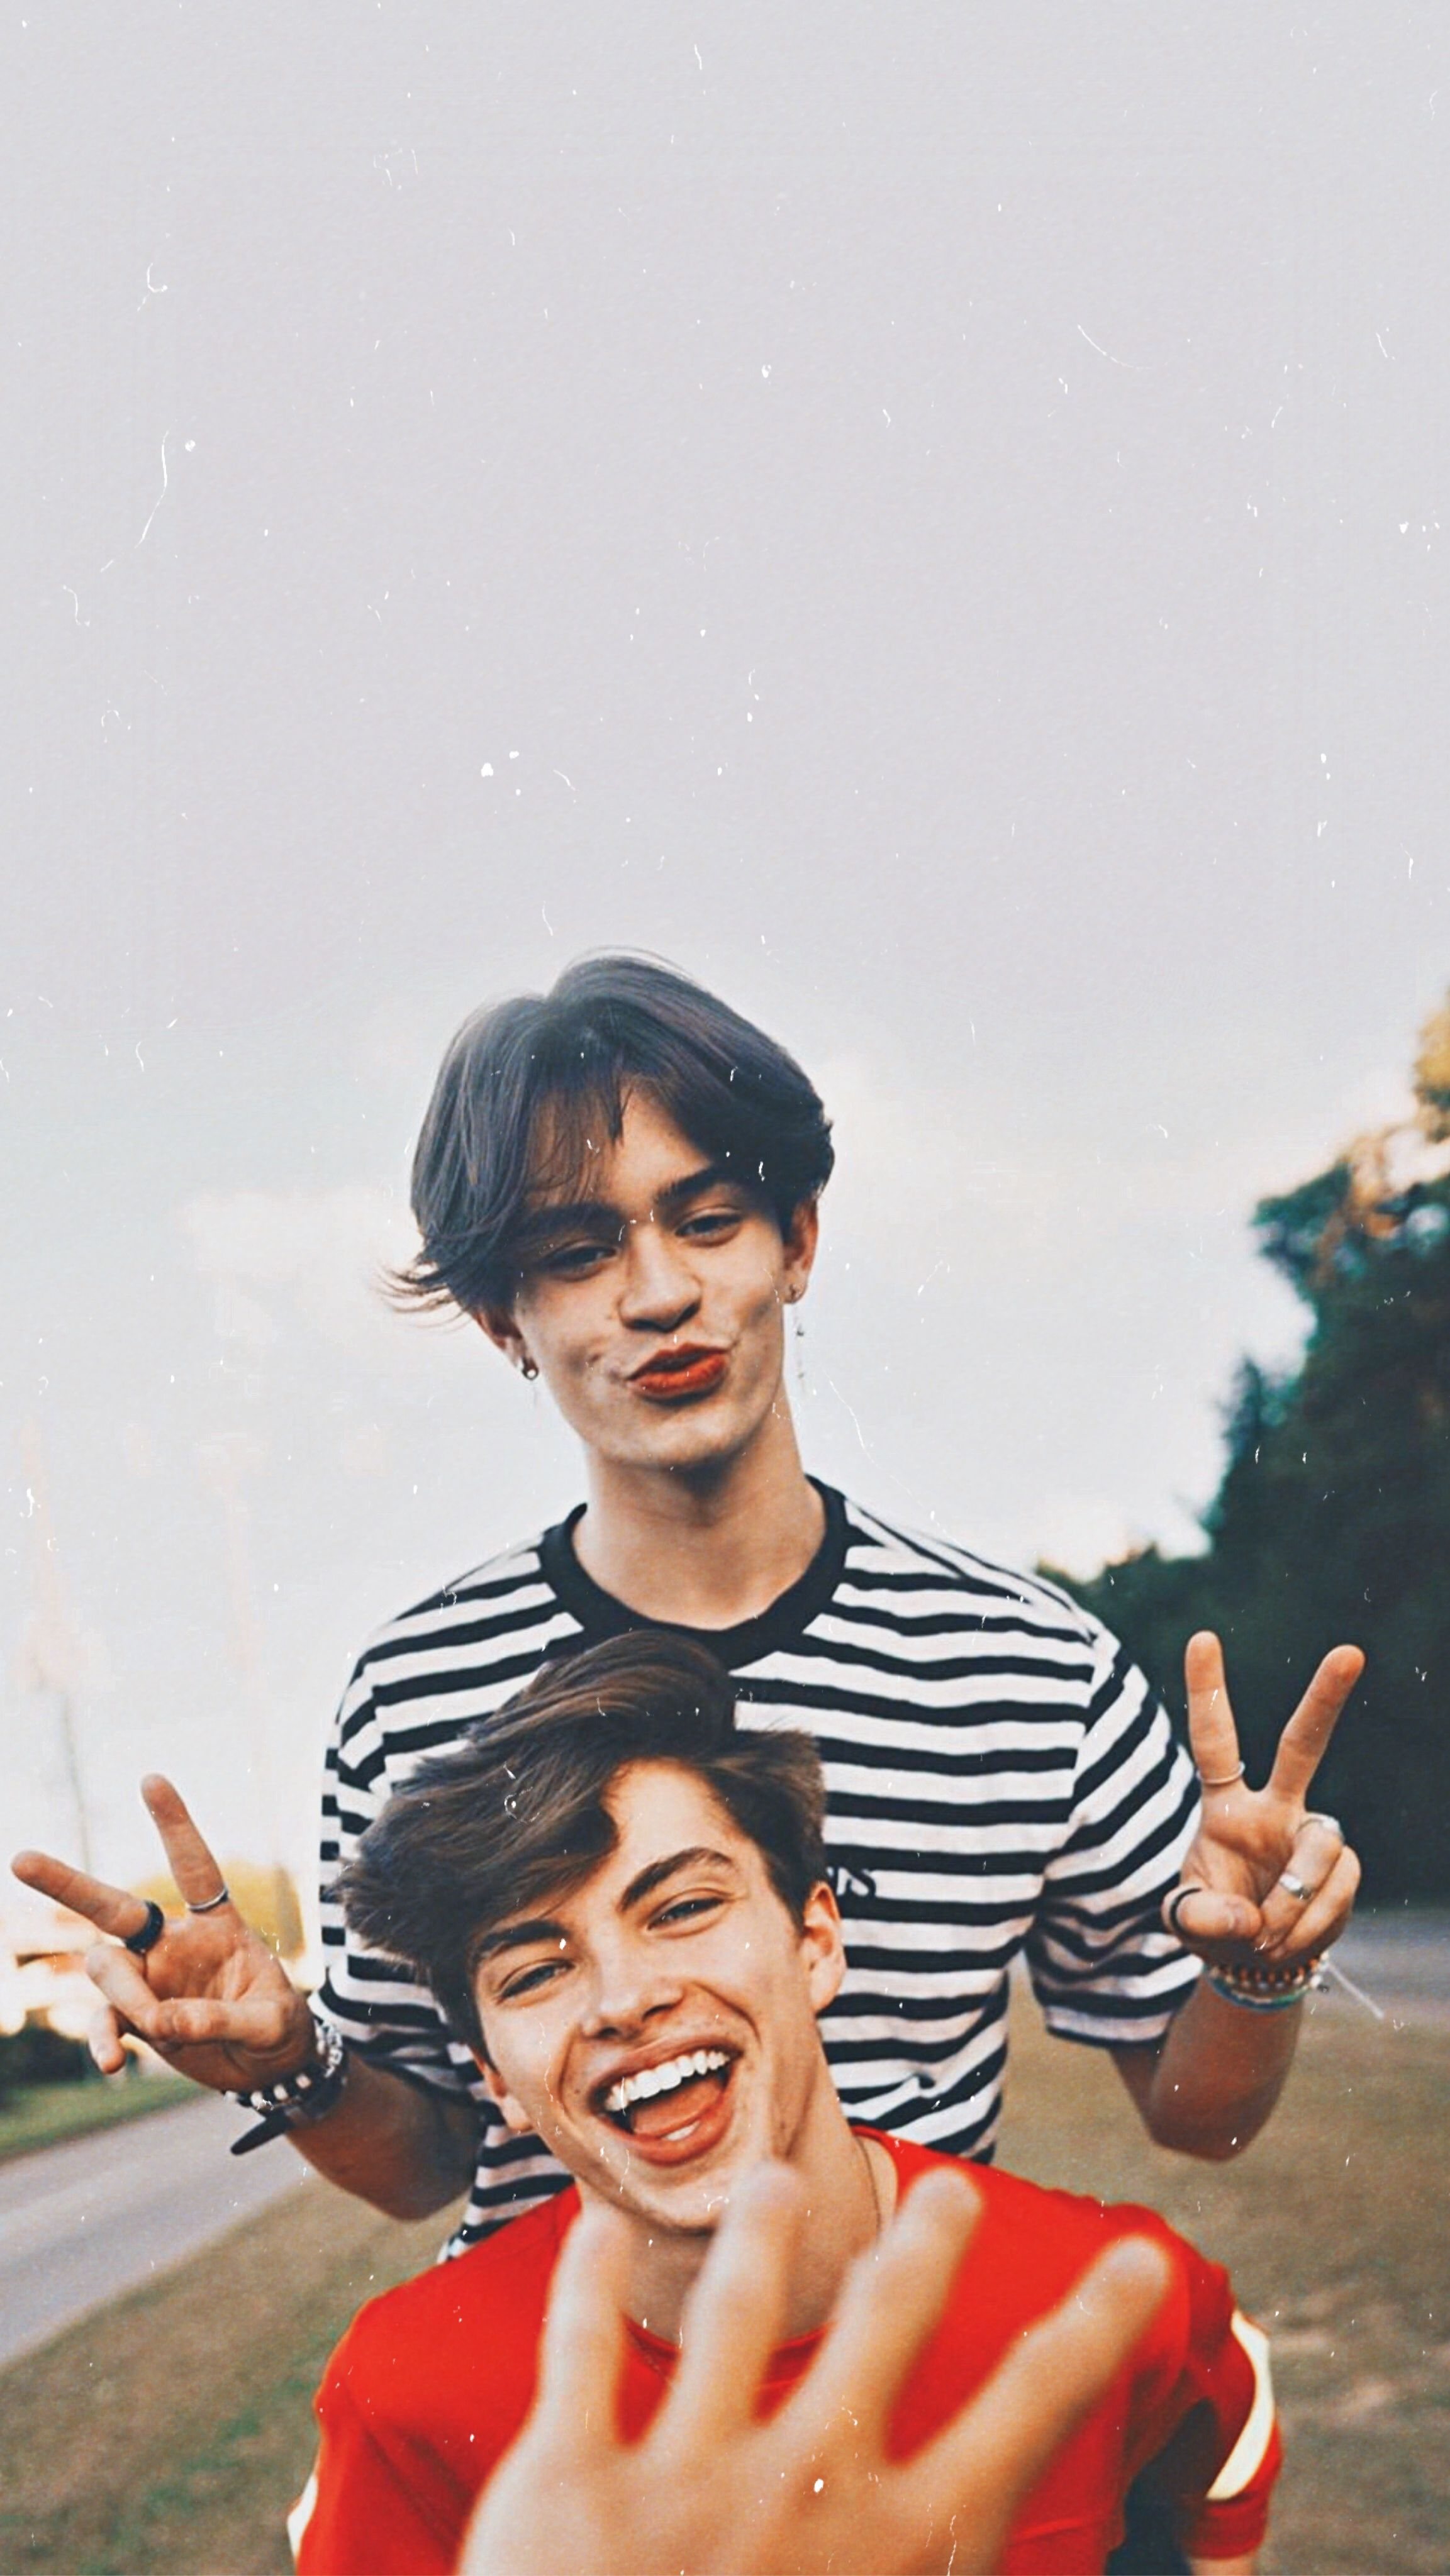 Chase Keith Anthony Reeves Wallpaper Cute Teenage Boys Anthony Beautiful Boys